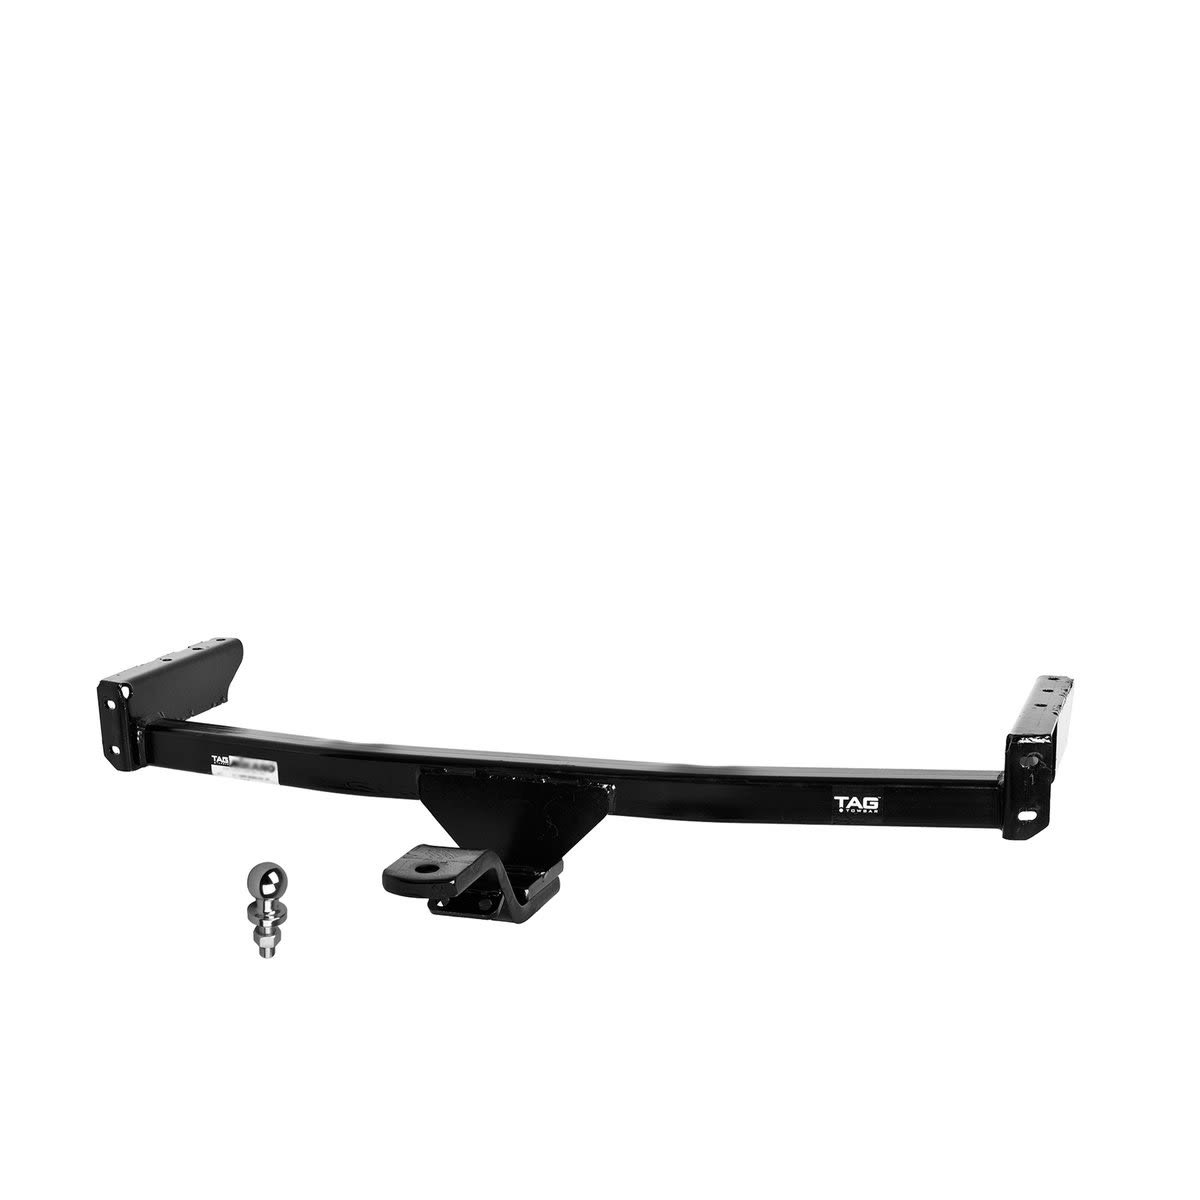 TAG Light Duty Towbar to suit Hyundai Getz (09/2002 - 2011) - No Wiring Harness